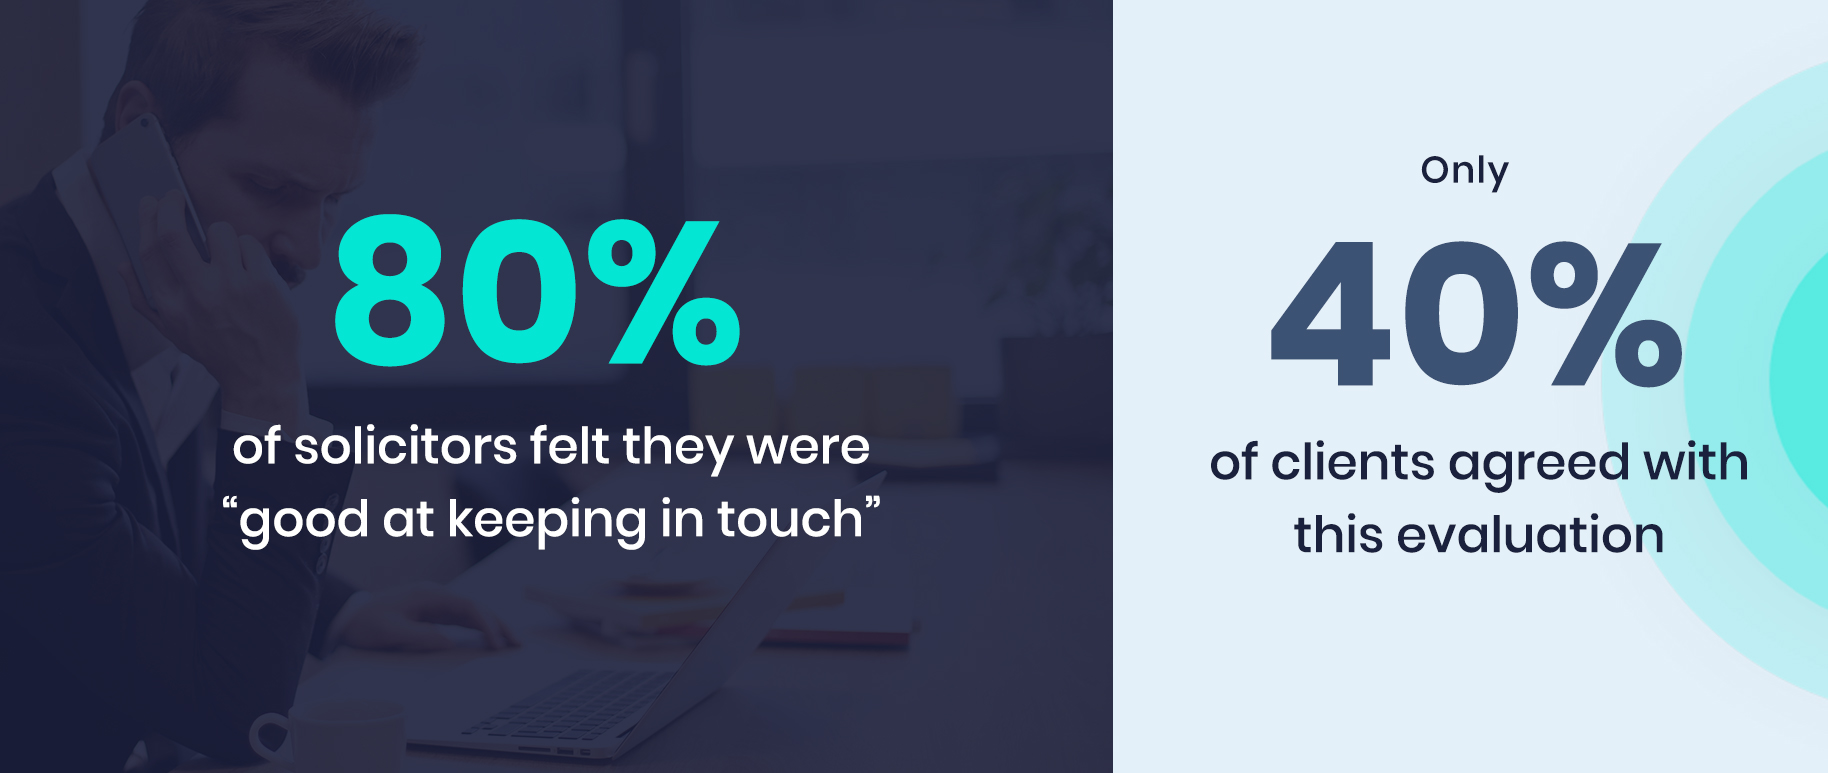 "80% of solicitors and barristers felt they were ""good at keeping in touch"", whilst only 40% of clients agreed with this evaluation"